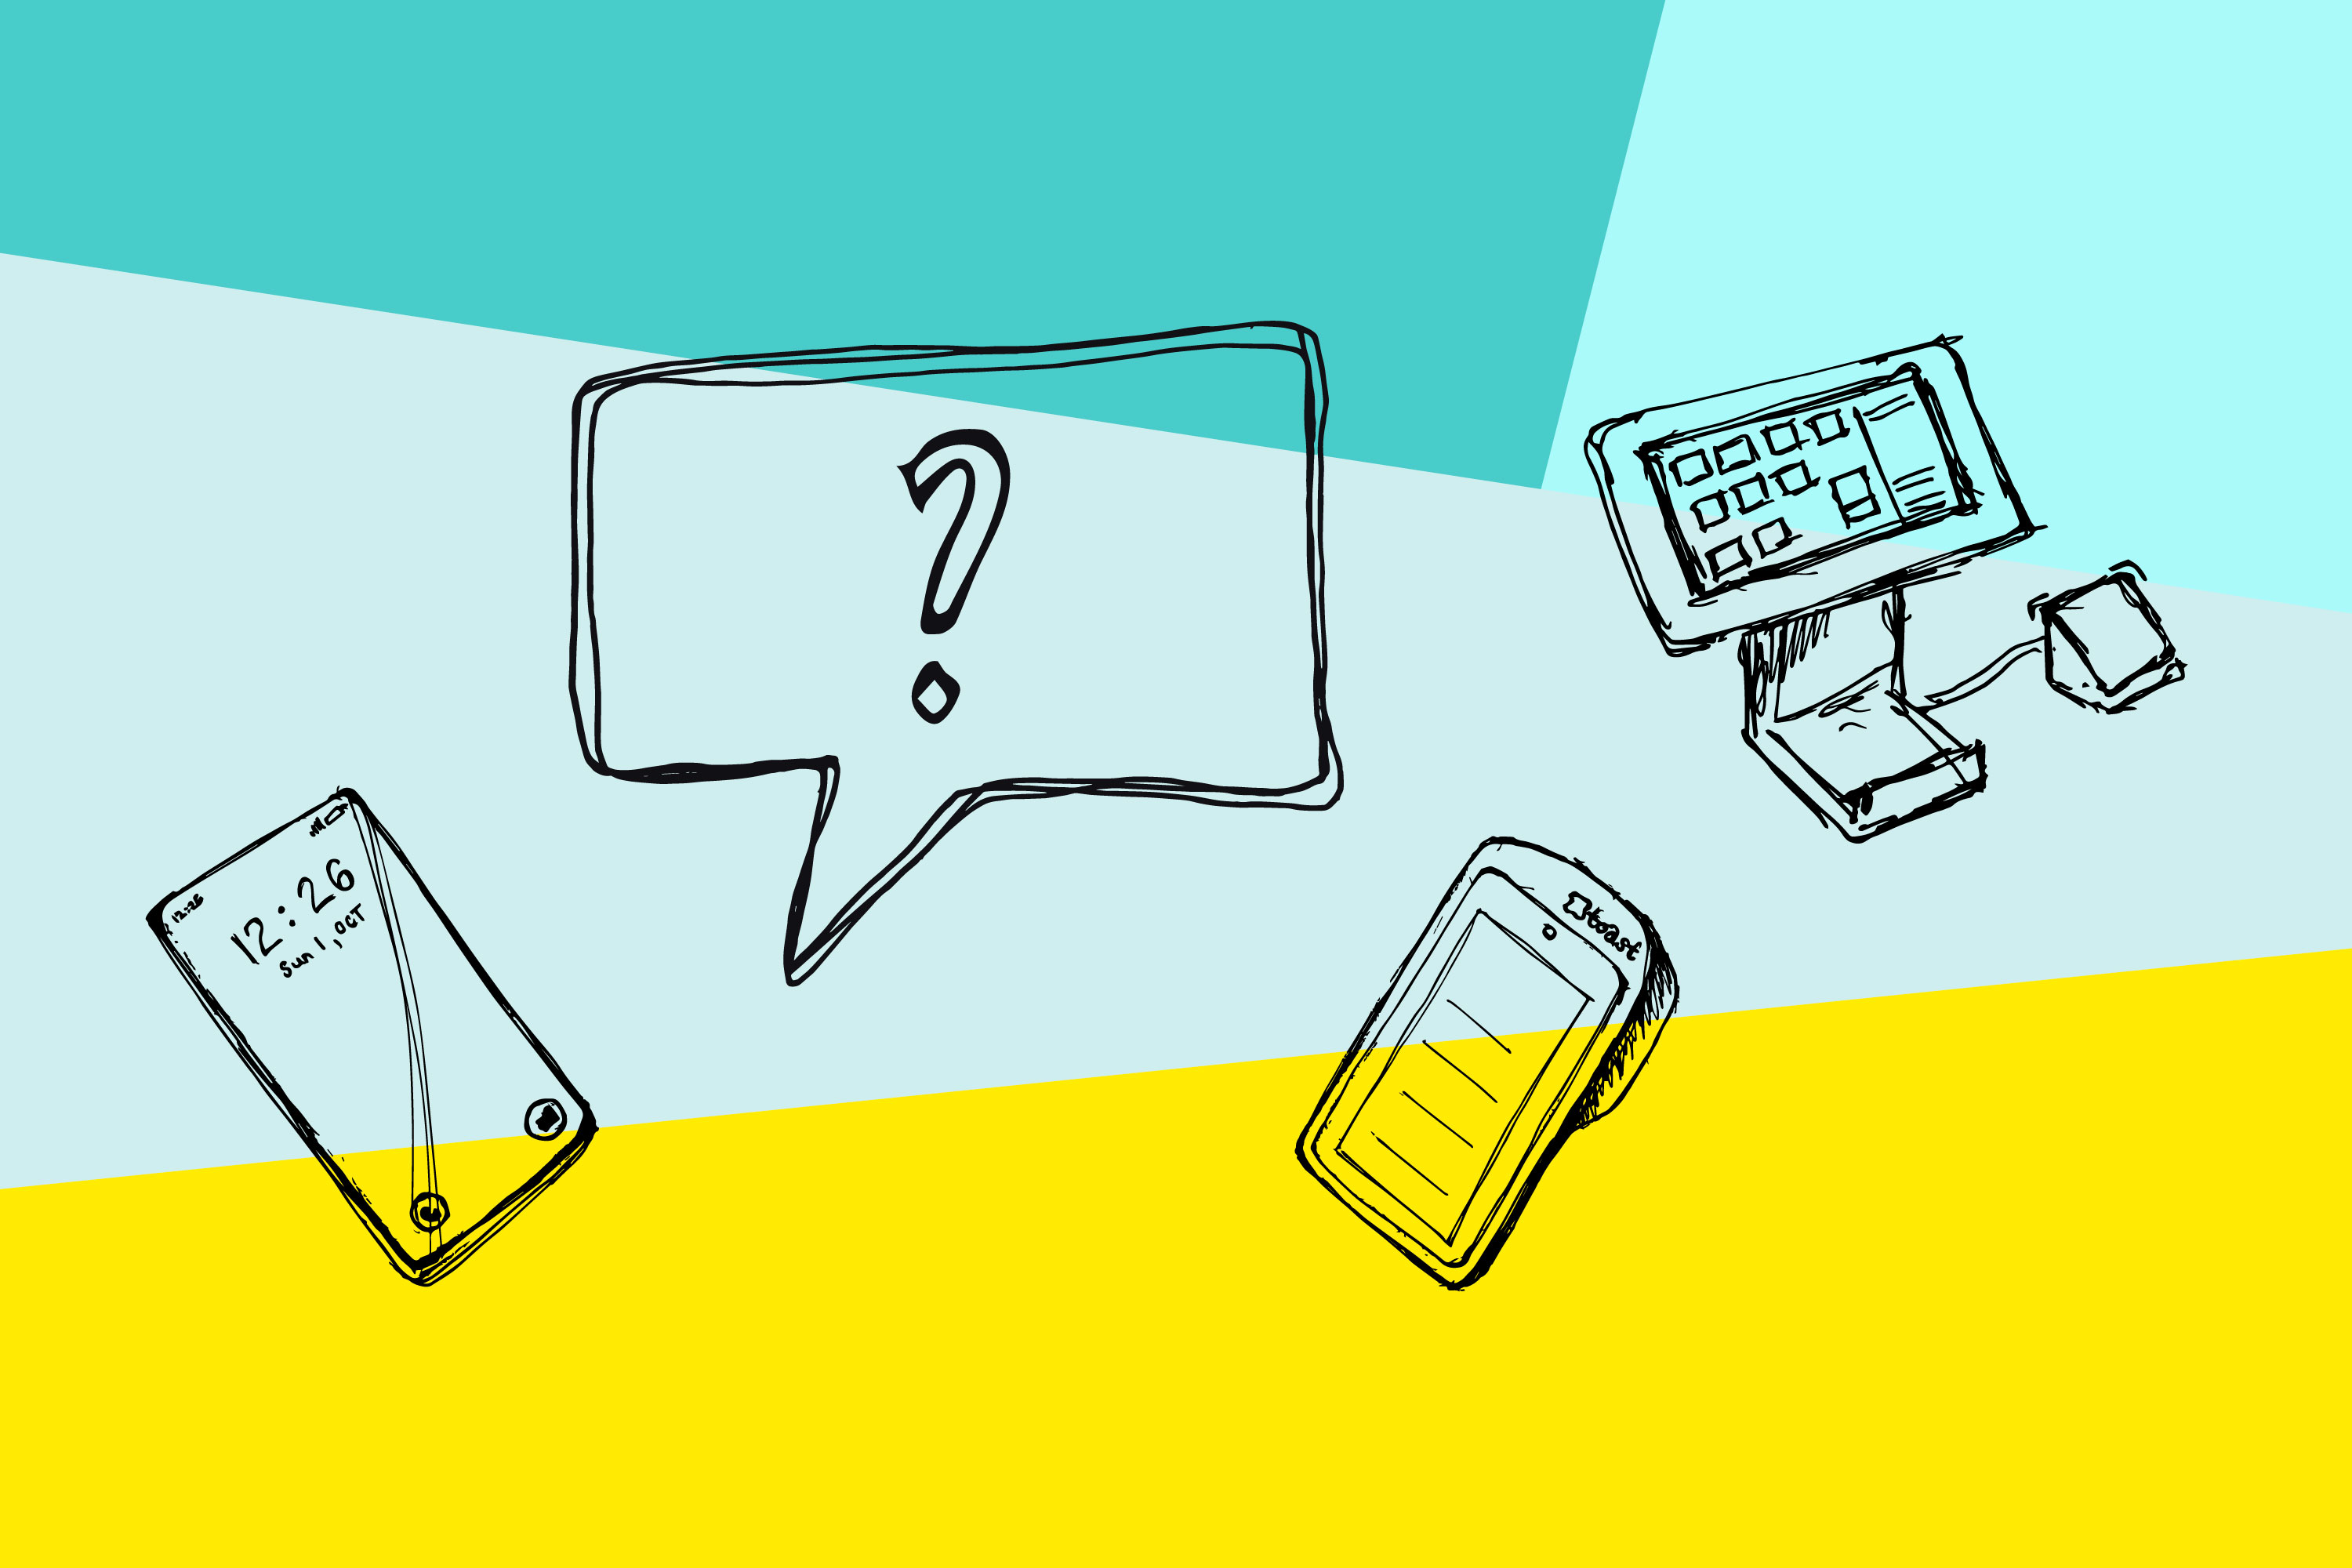 [Partner] 7 questions restaurant operators should ask during every tech demo